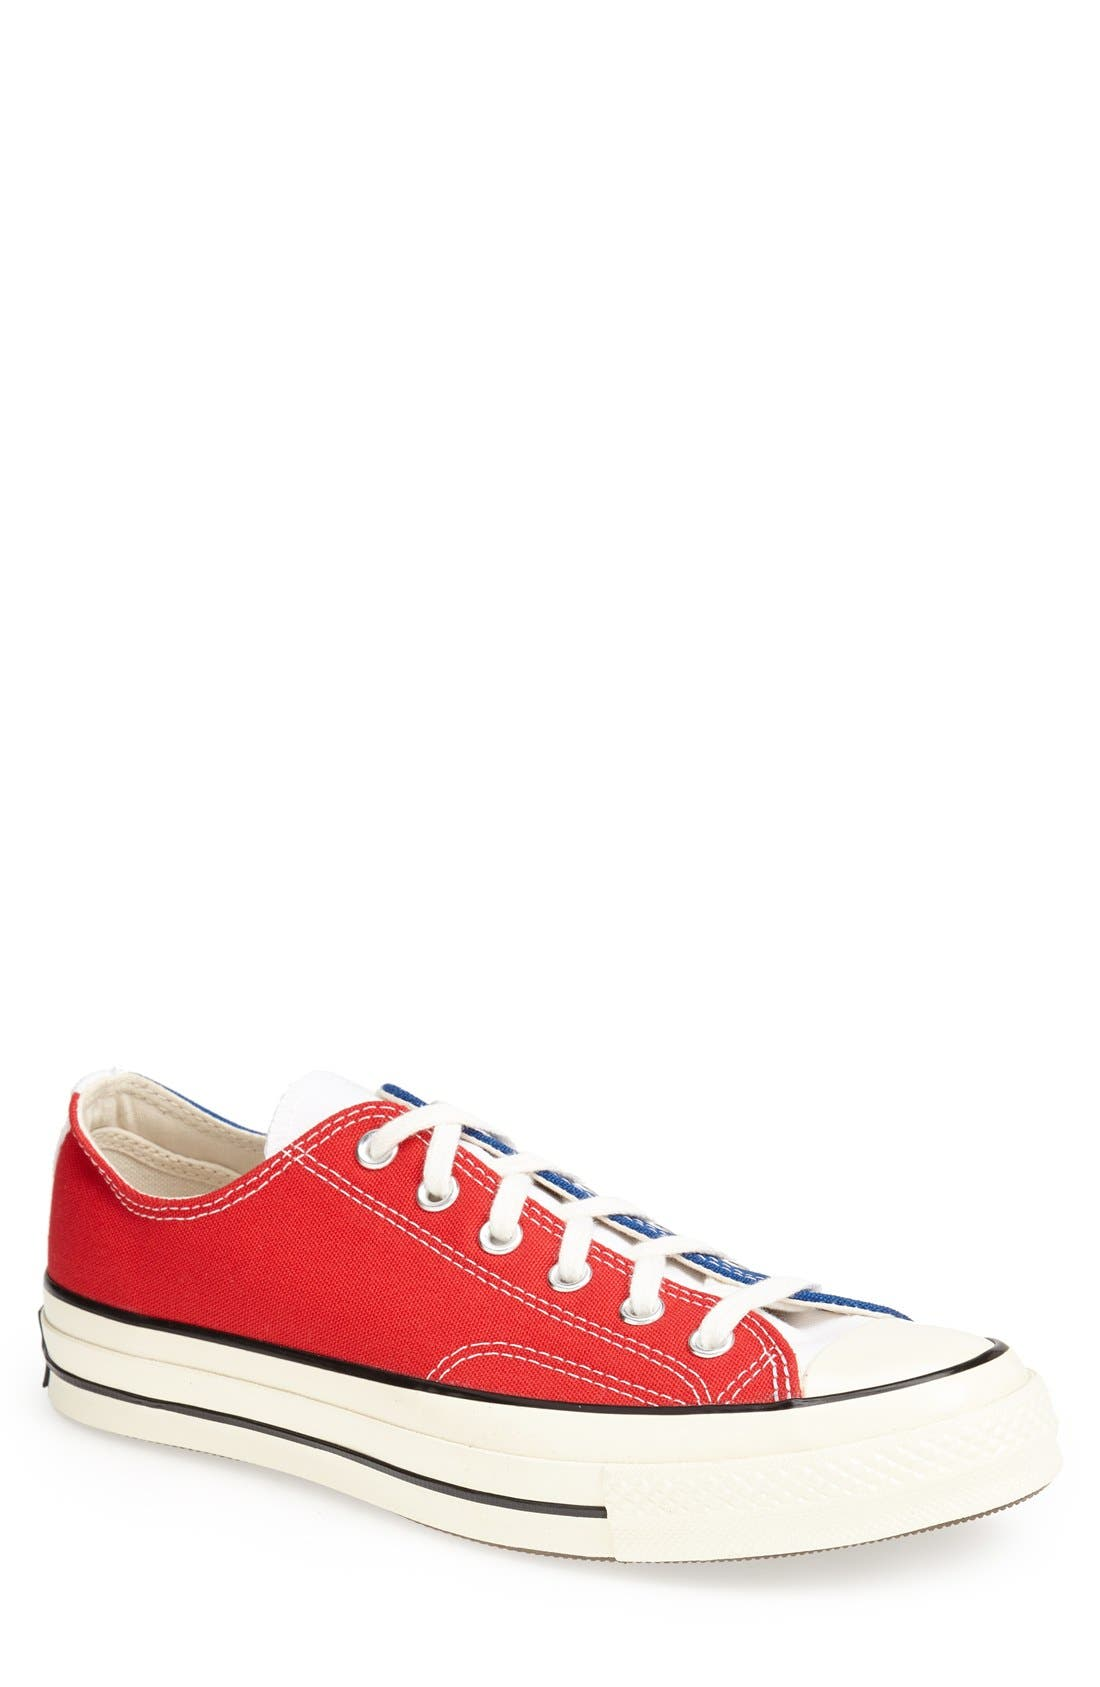 Alternate Image 1 Selected - Converse Chuck Taylor® All Star® '70 Three-Panel Canvas Sneaker (Men)